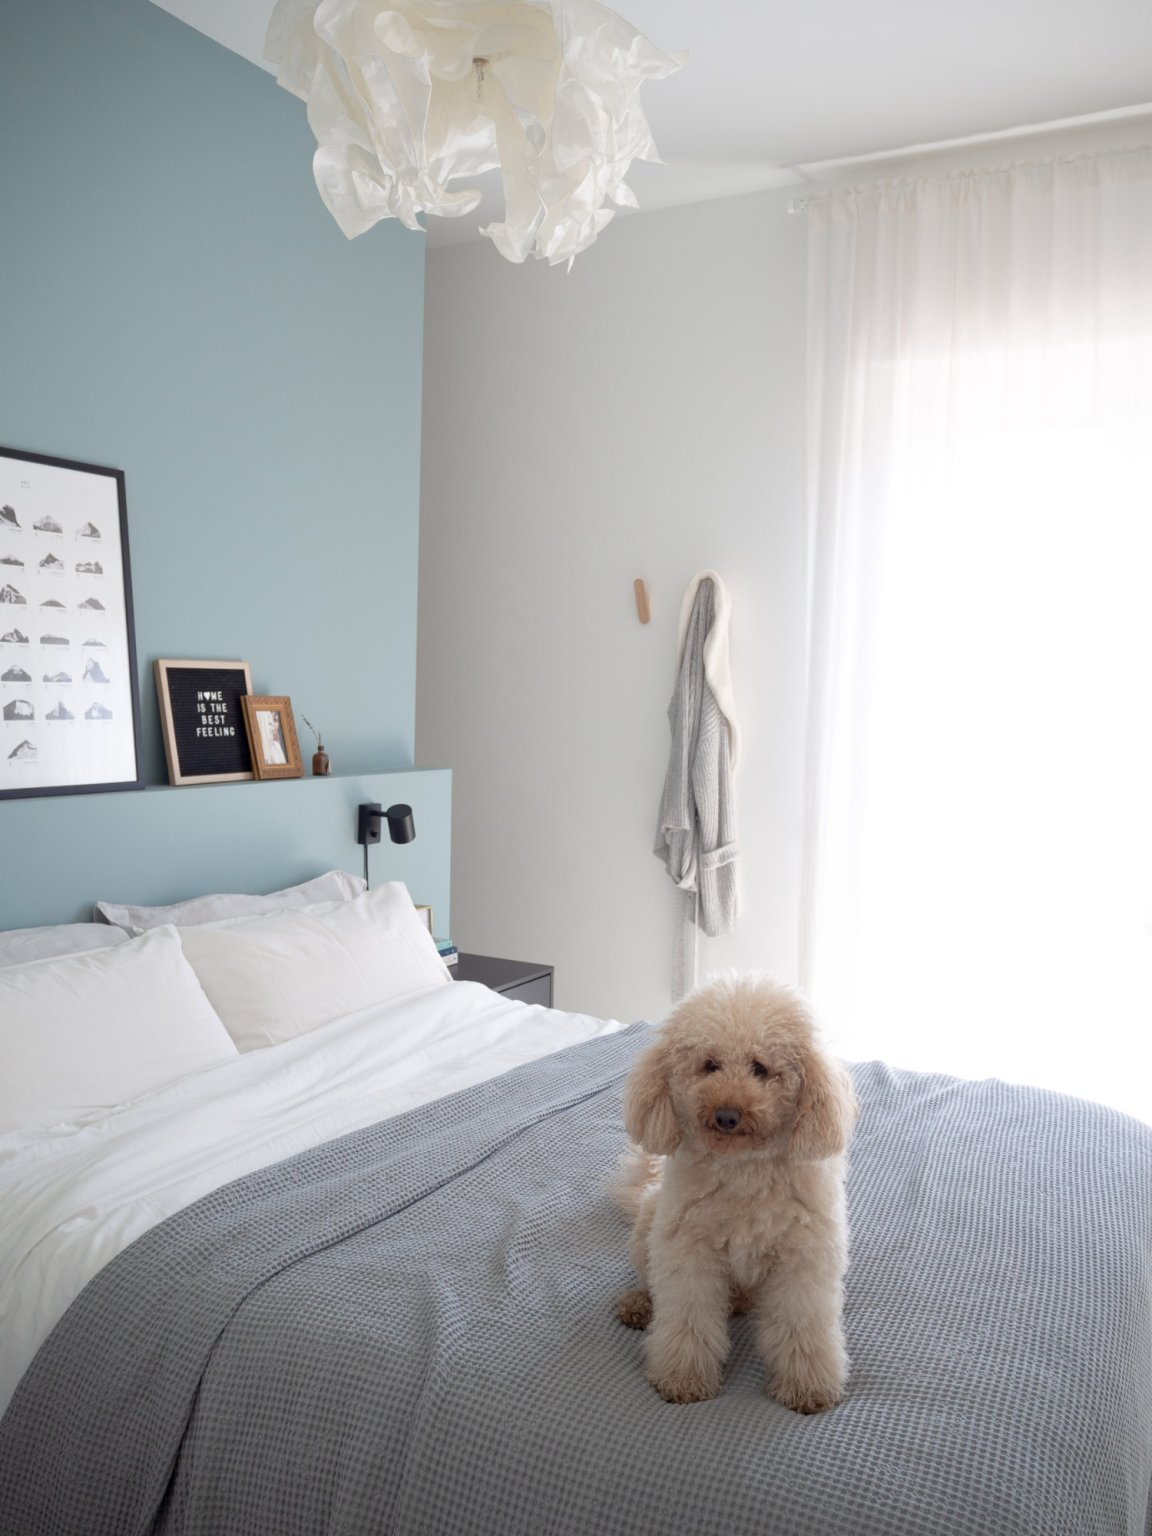 Minimal blue and grey bedroom with fluffy white dog on bed